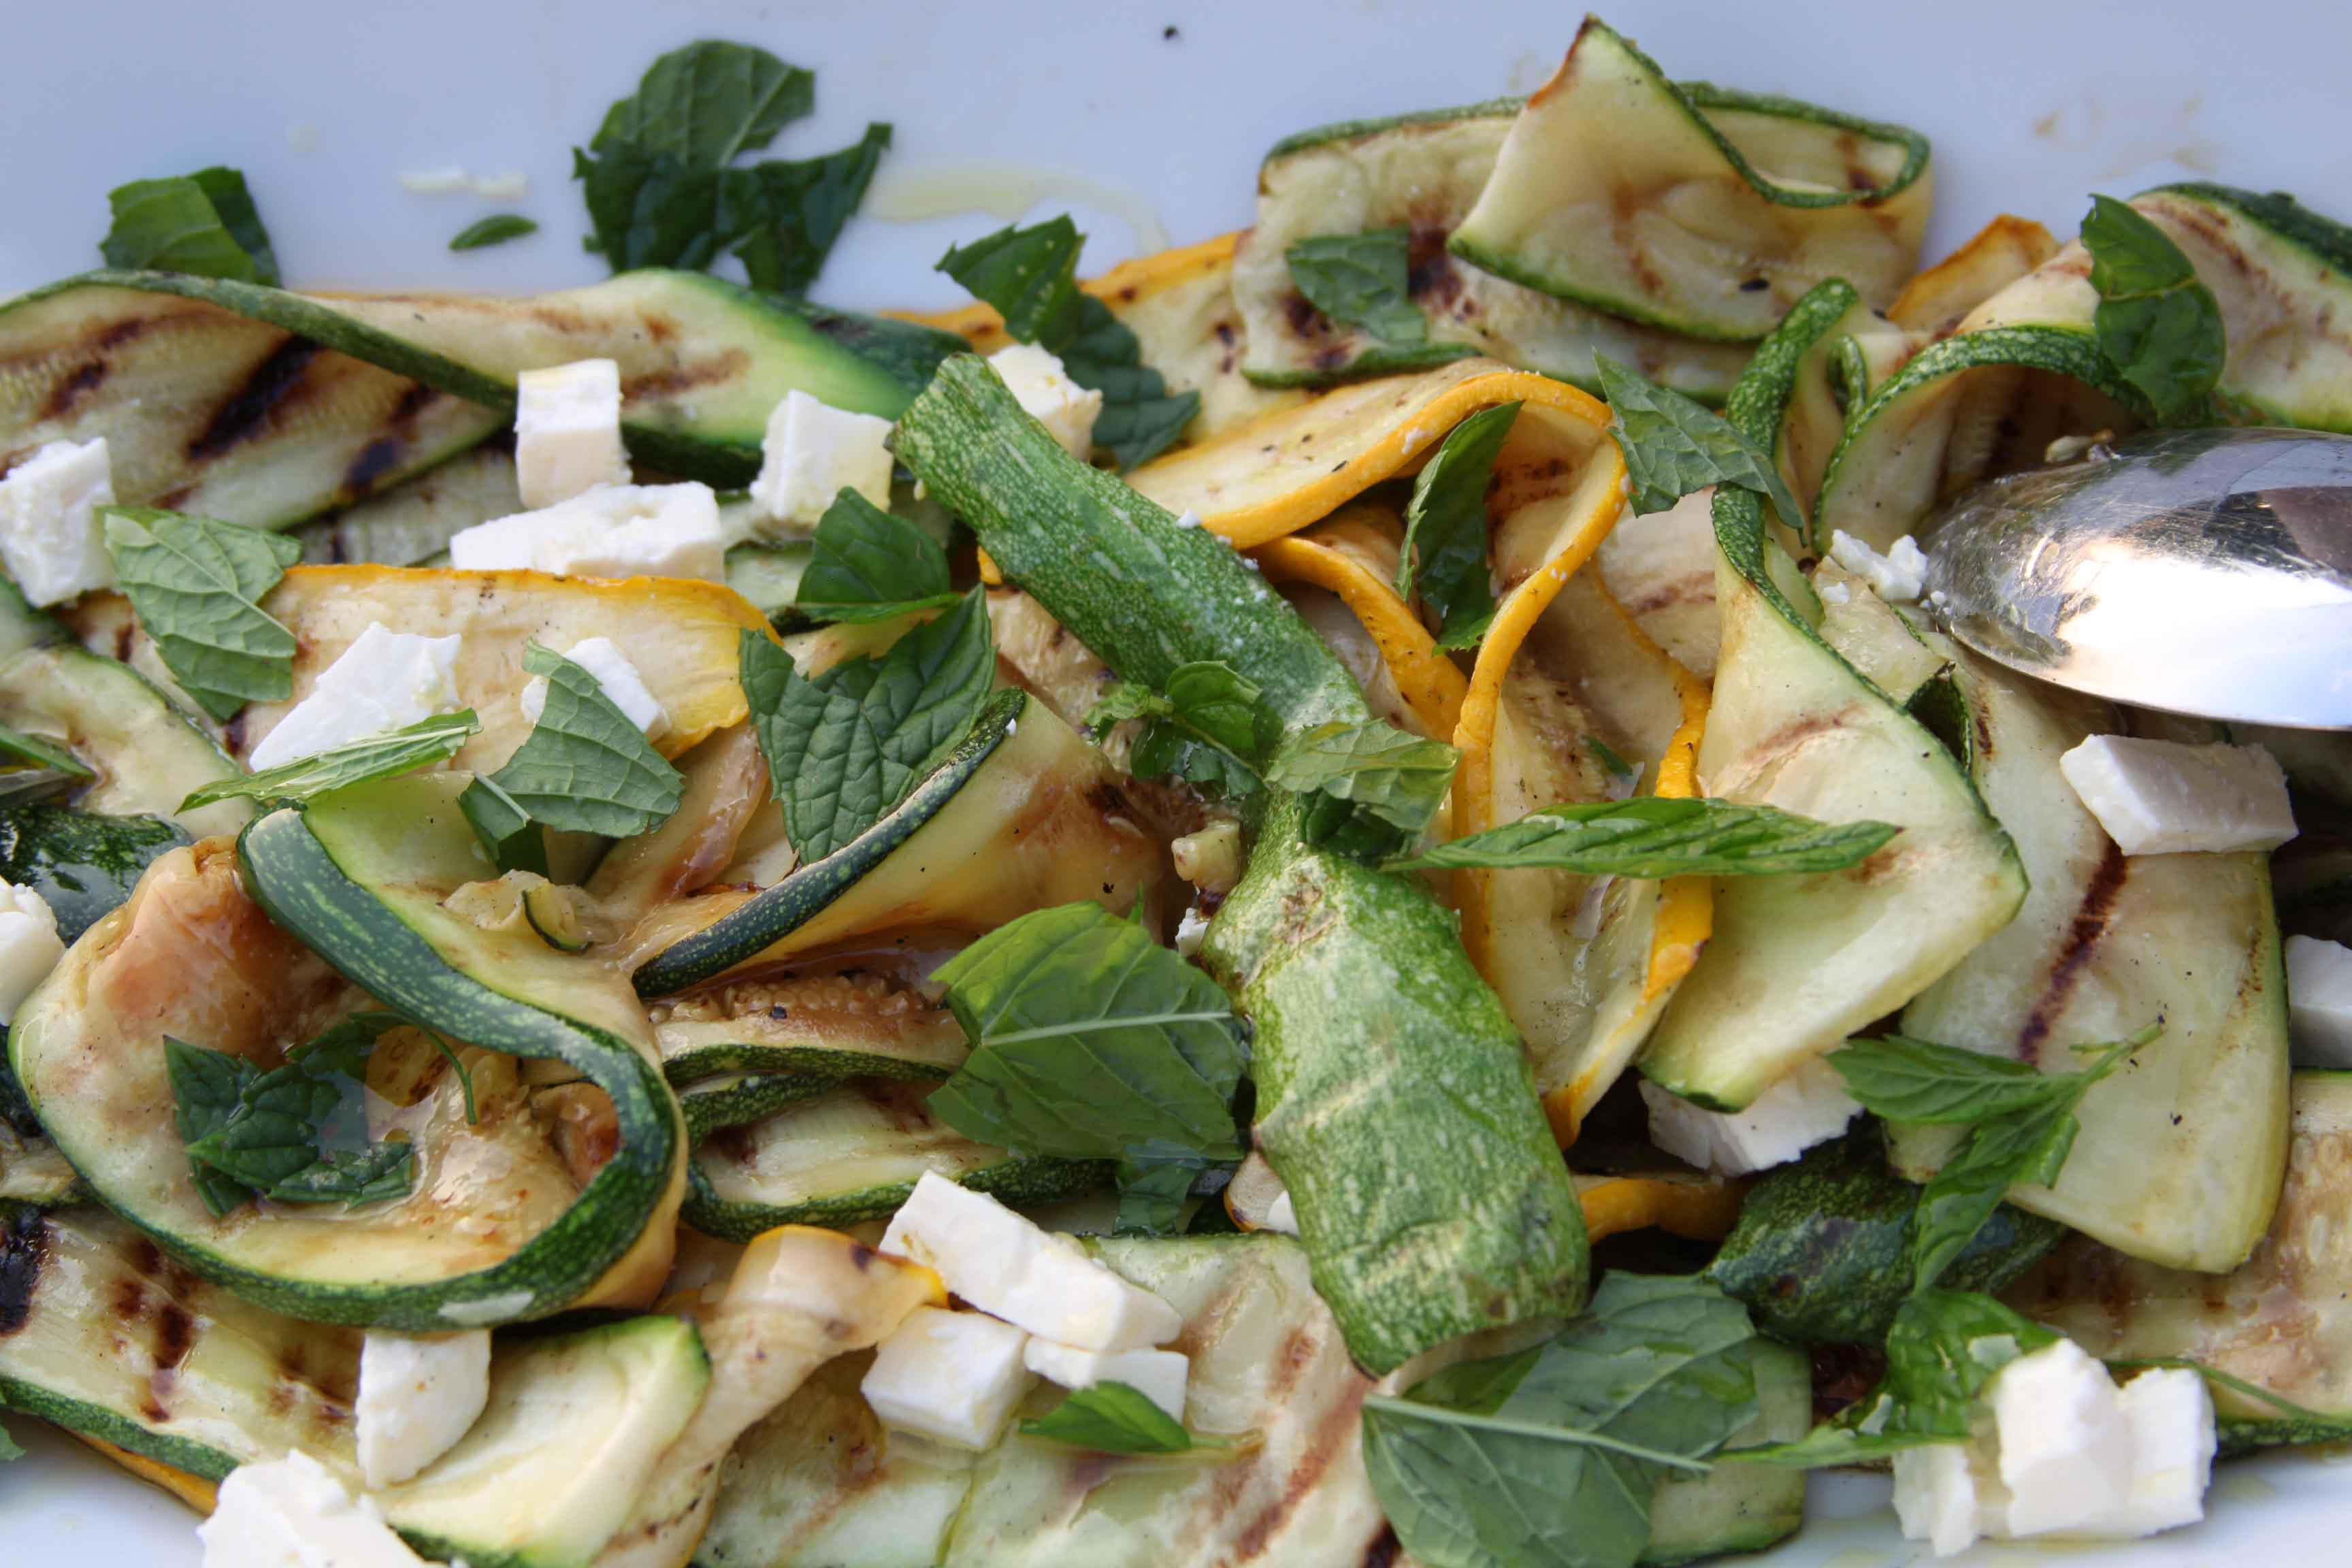 Anna May courgette salad